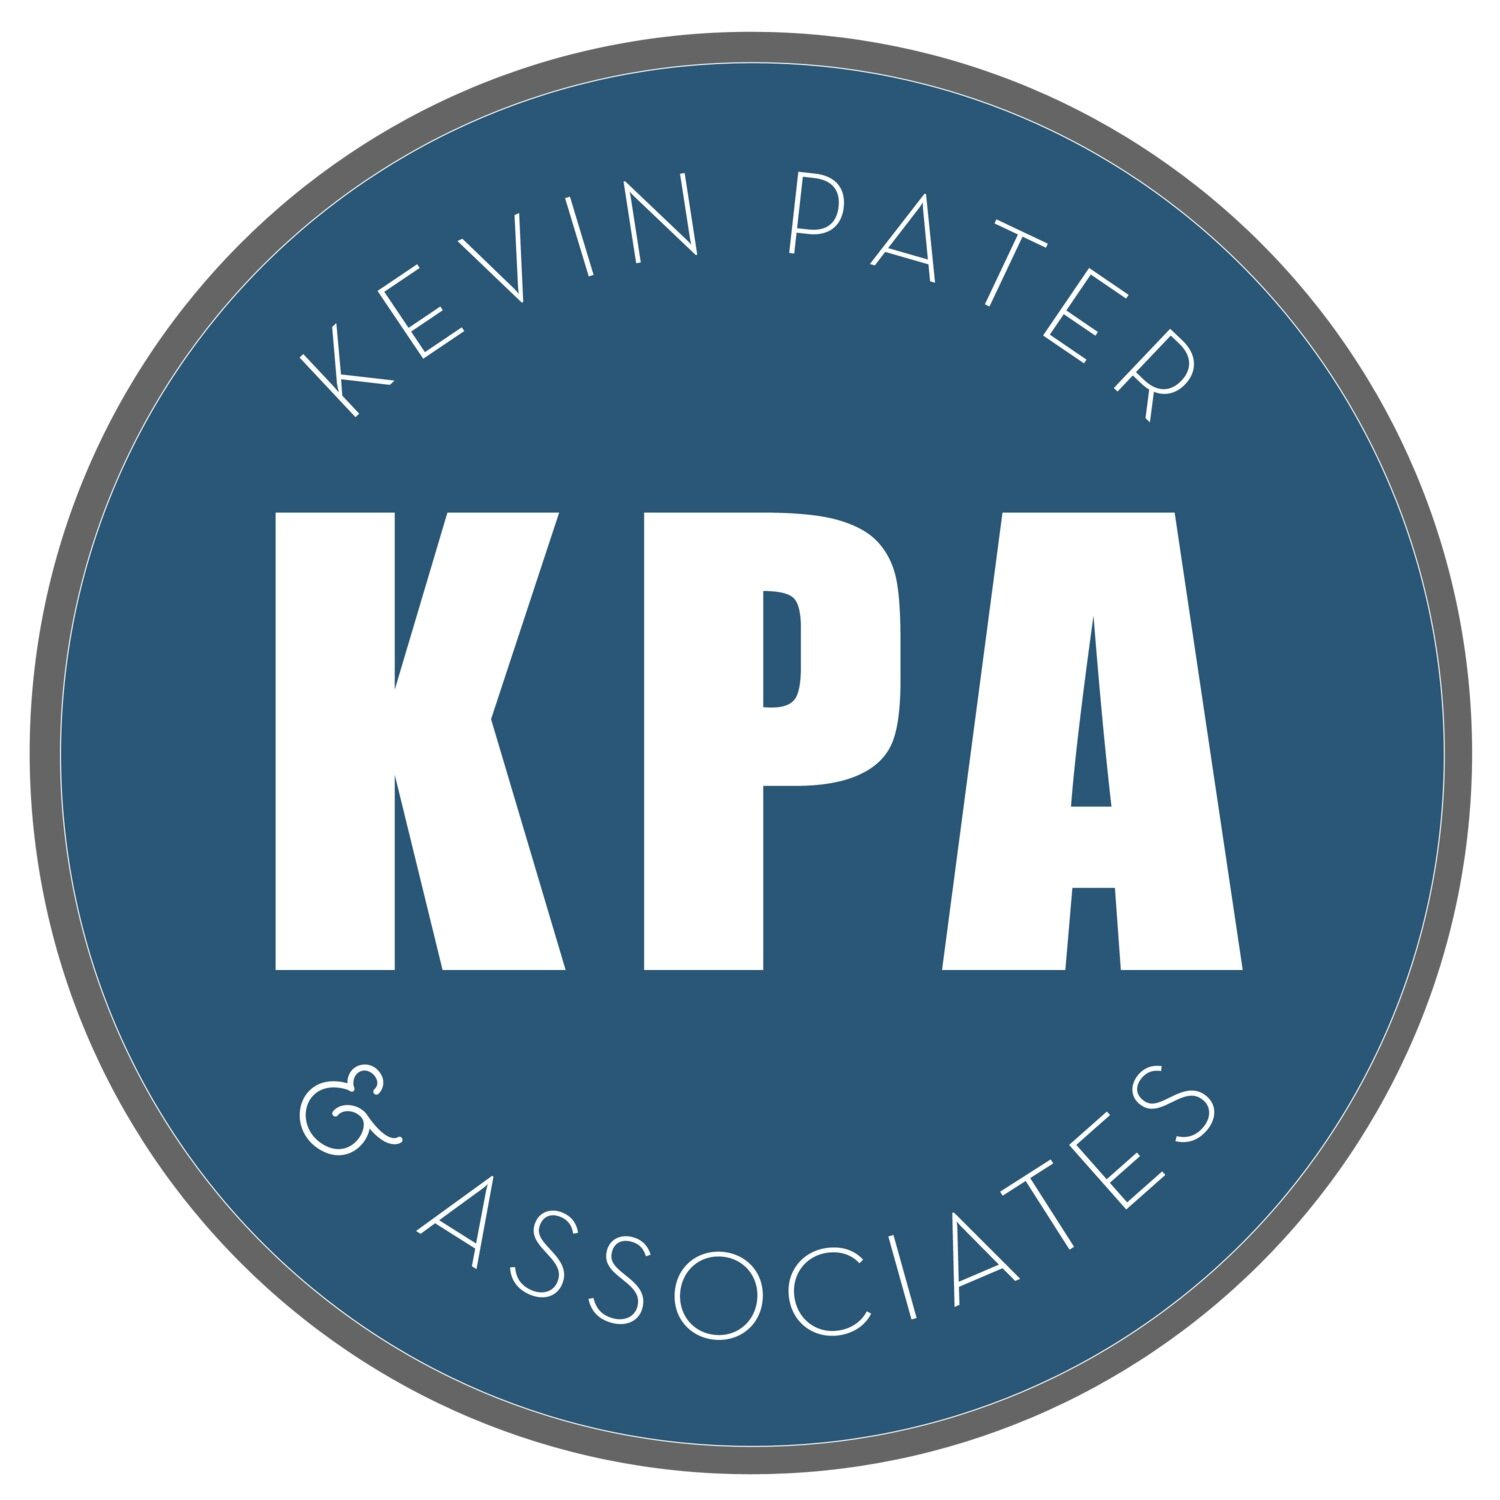 Kevin Pater and Associates